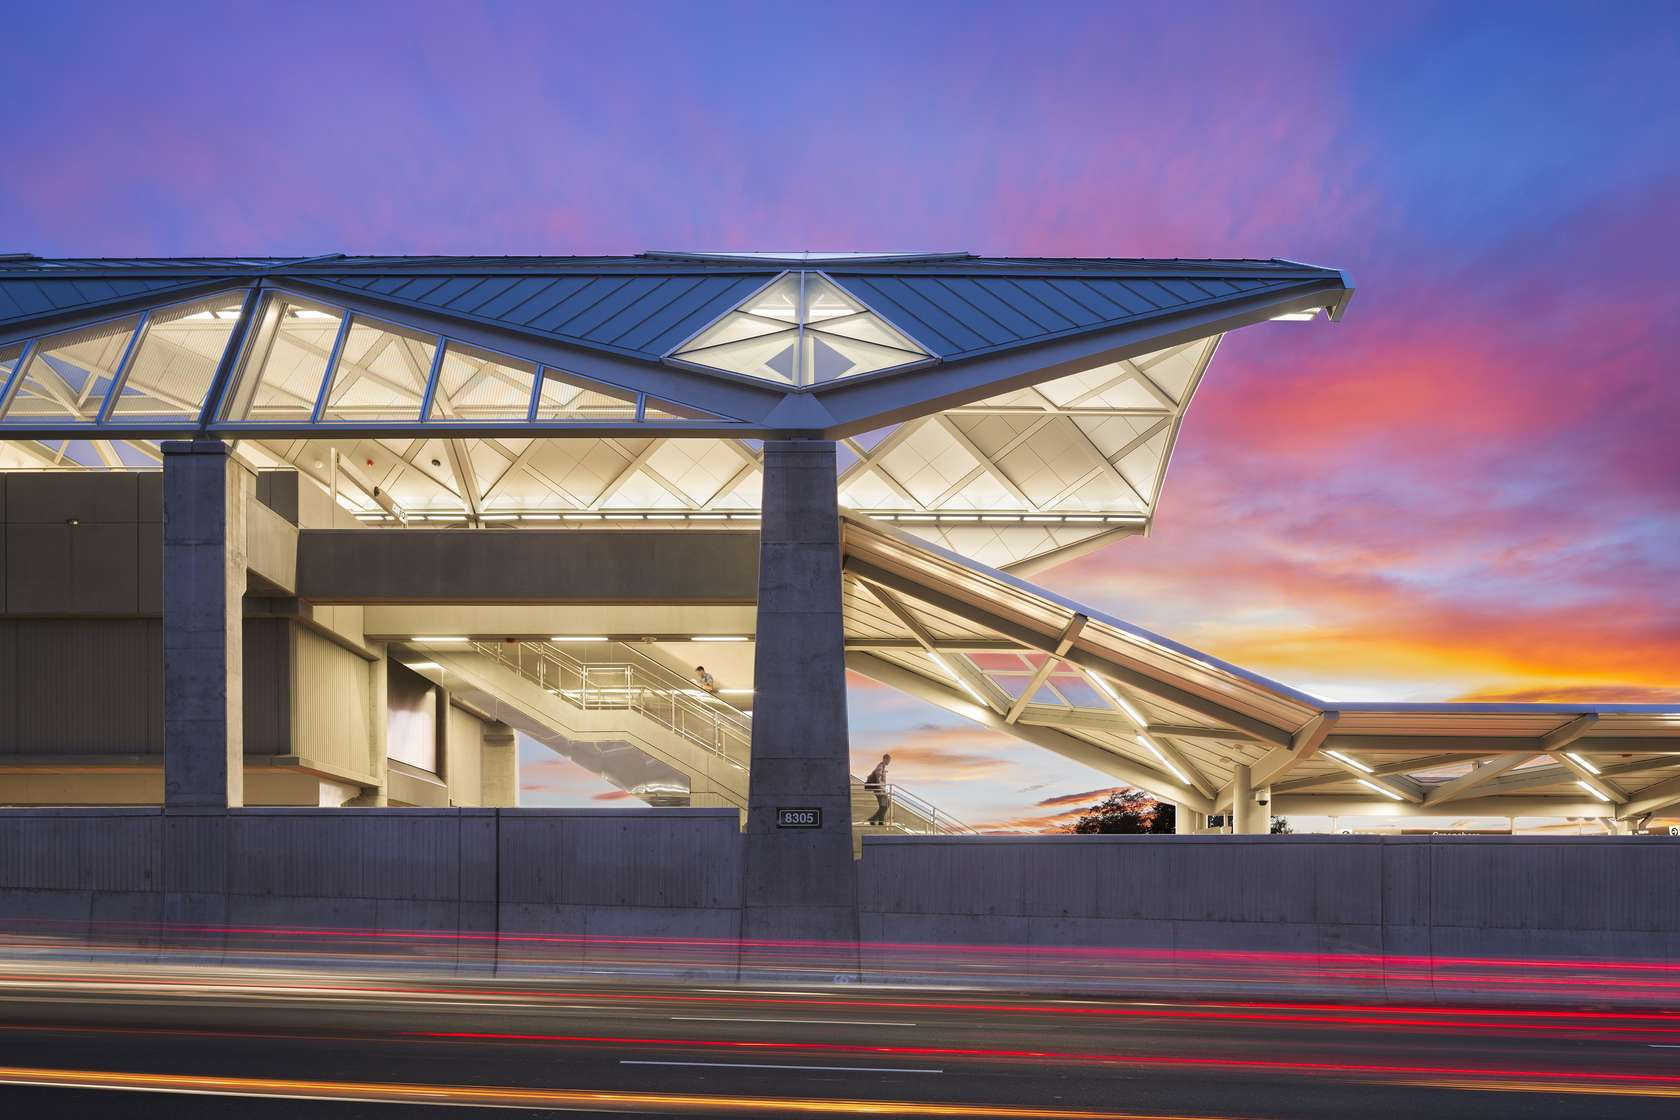 dulles corridor metrorail project If you have questions or concerns regarding construction activity on phase 2 of  the dulles corridor metrorail project, please call our construction hotline.